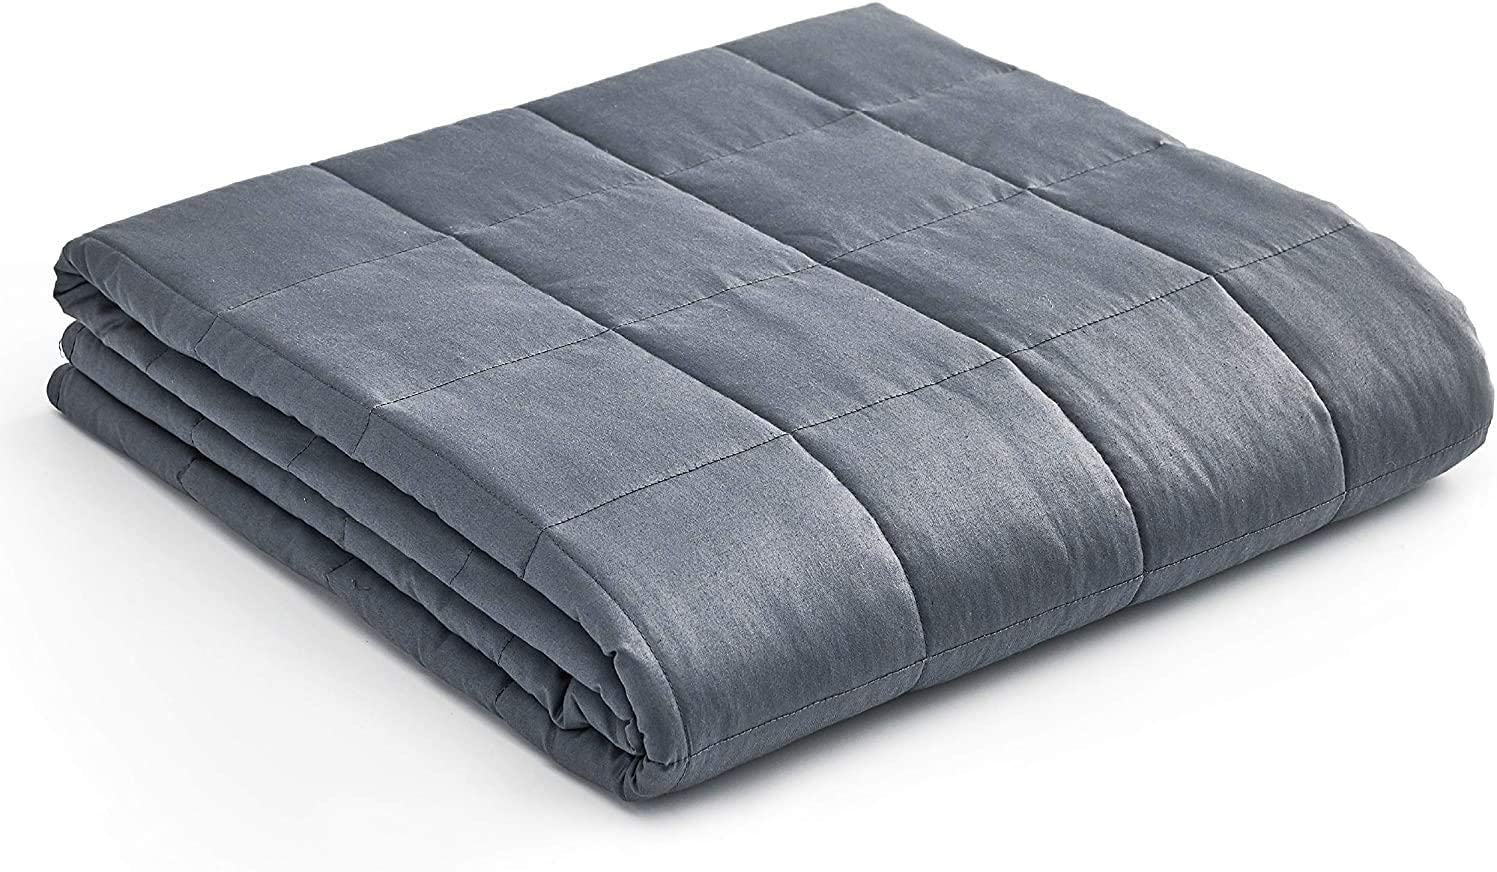 YnM Dark Grey Full Bed Cotton with Glass Beads Blanket